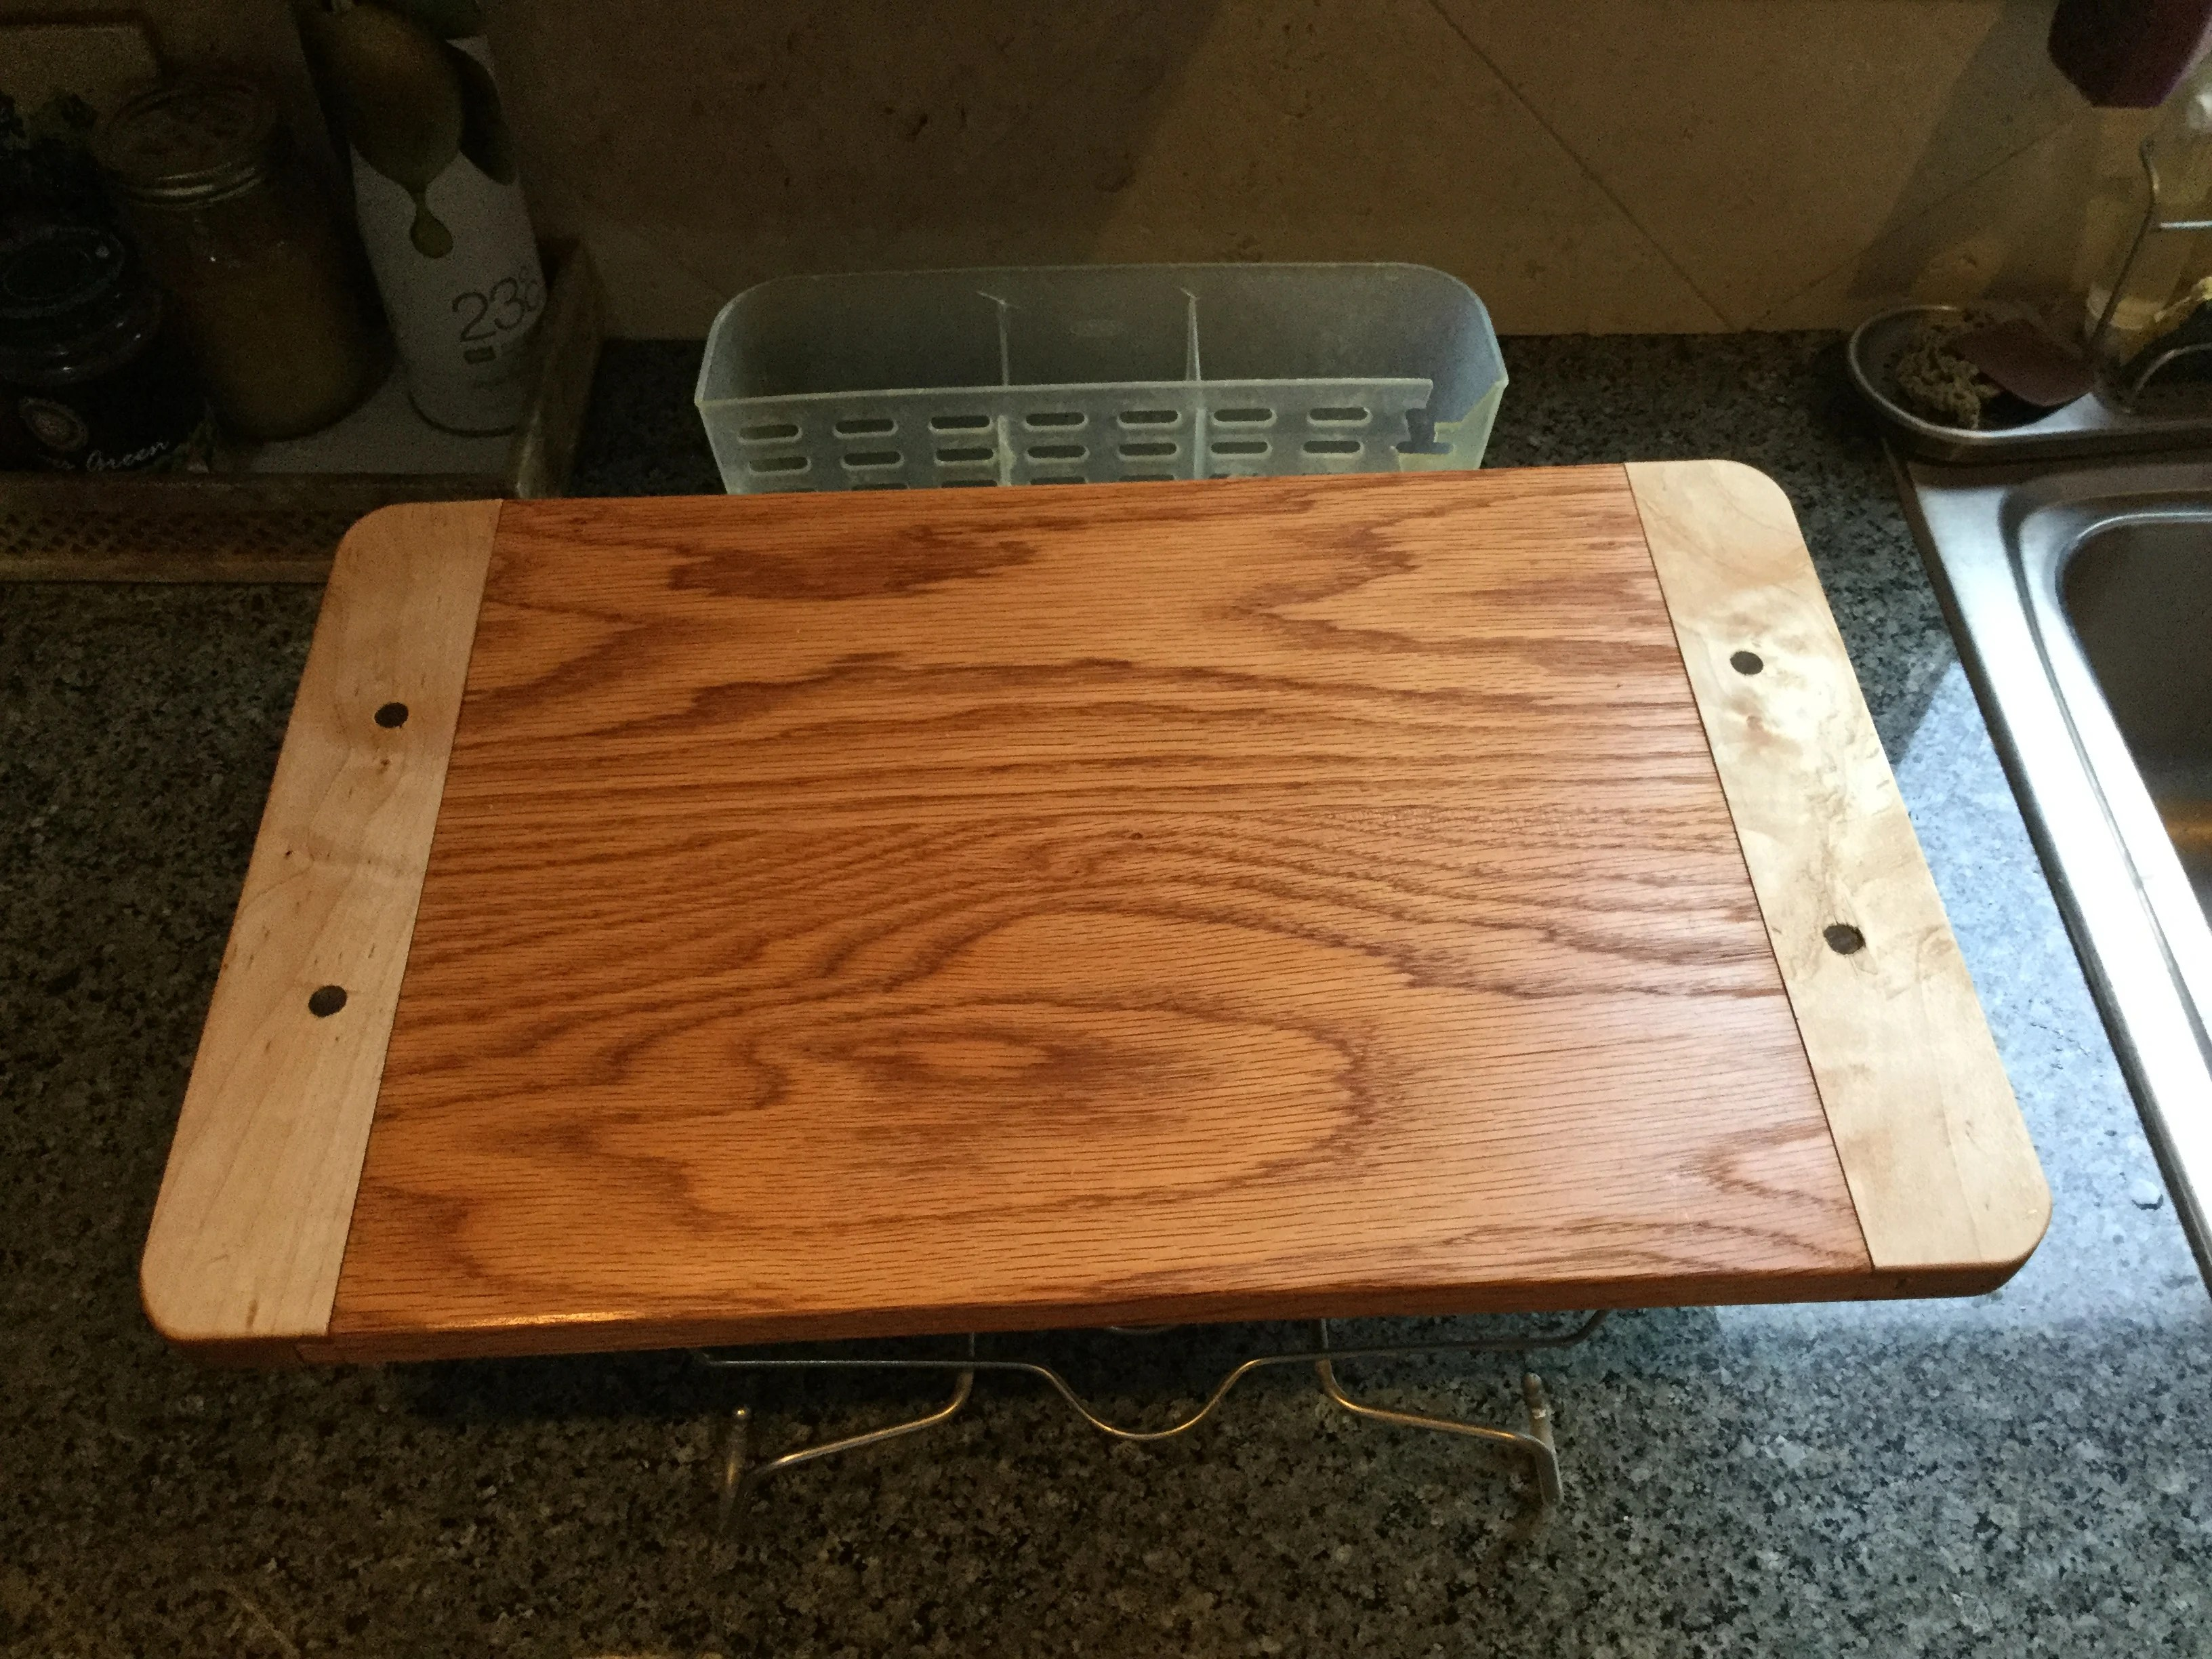 Breadboard-end Cutting Board by Steve Araiza